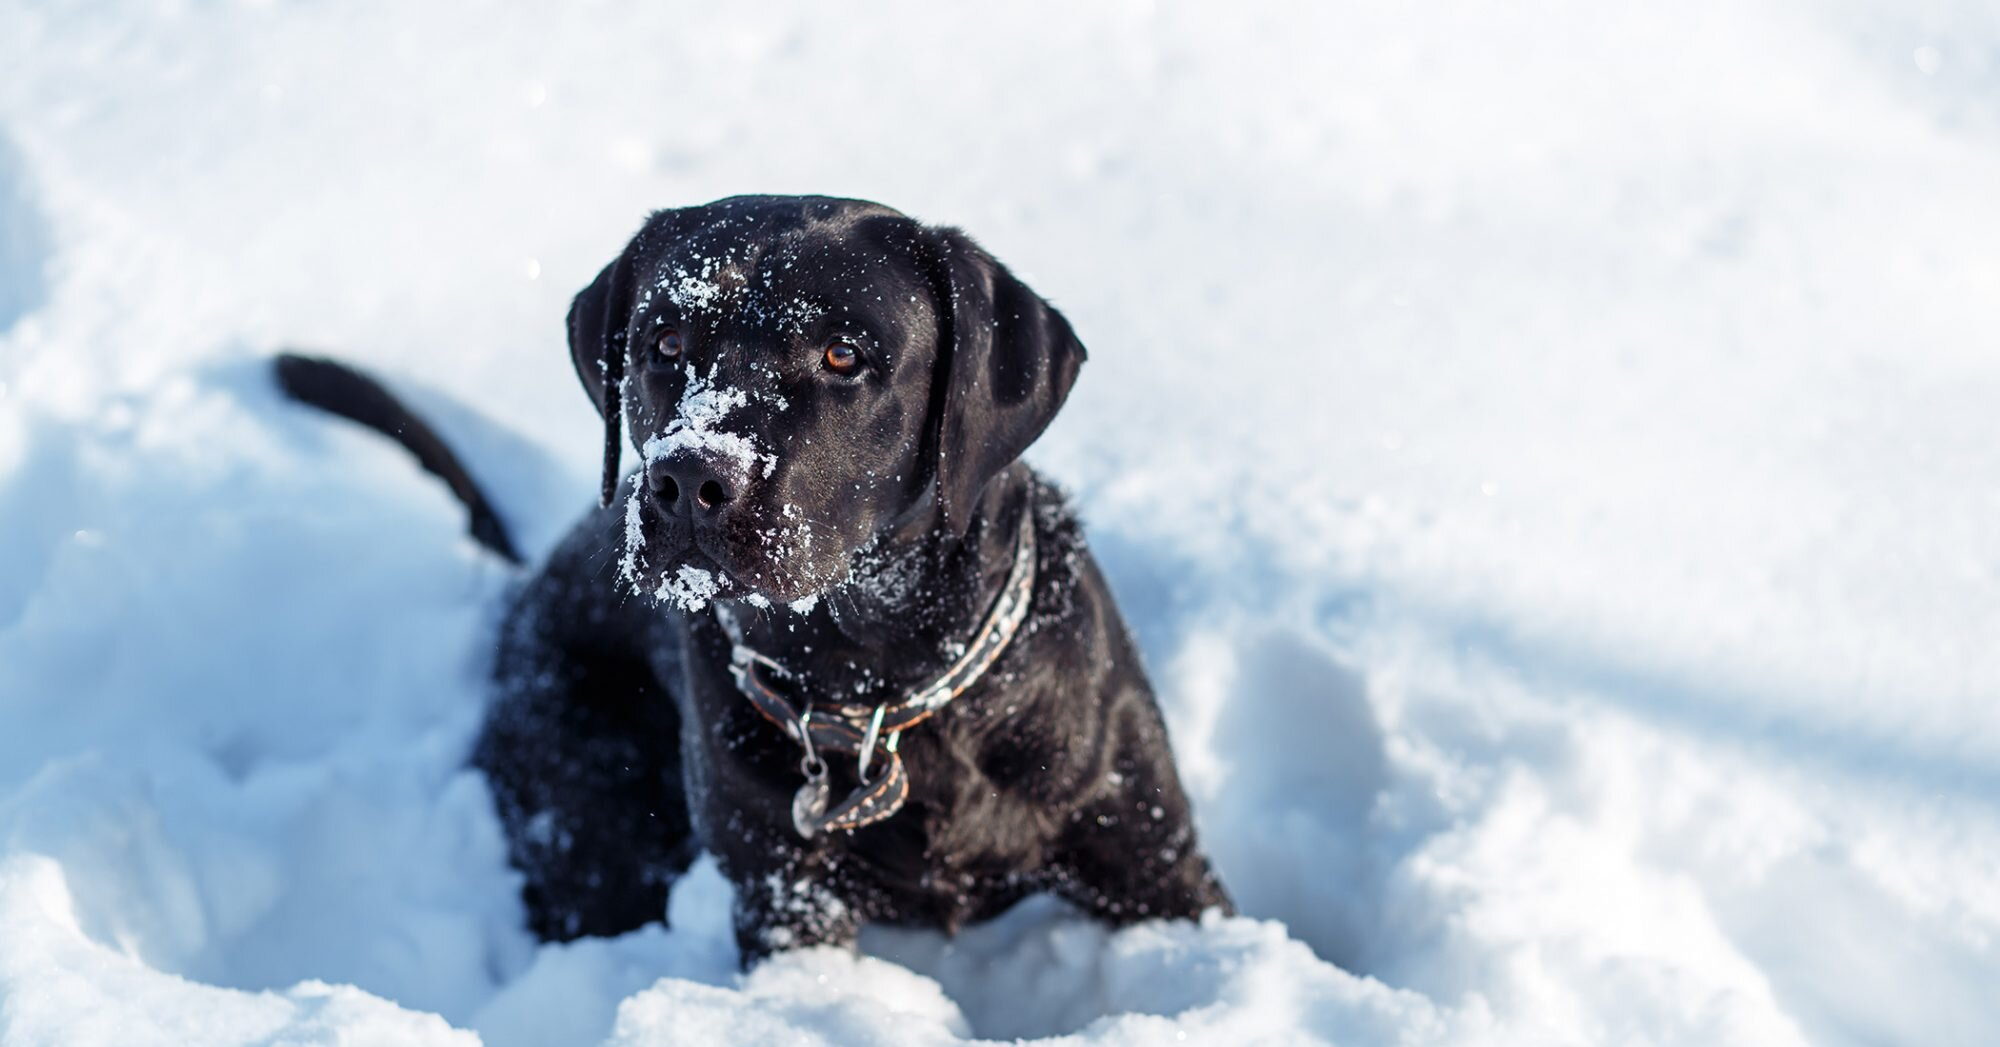 Winter Isn't So Ruff for This Rescue Pup